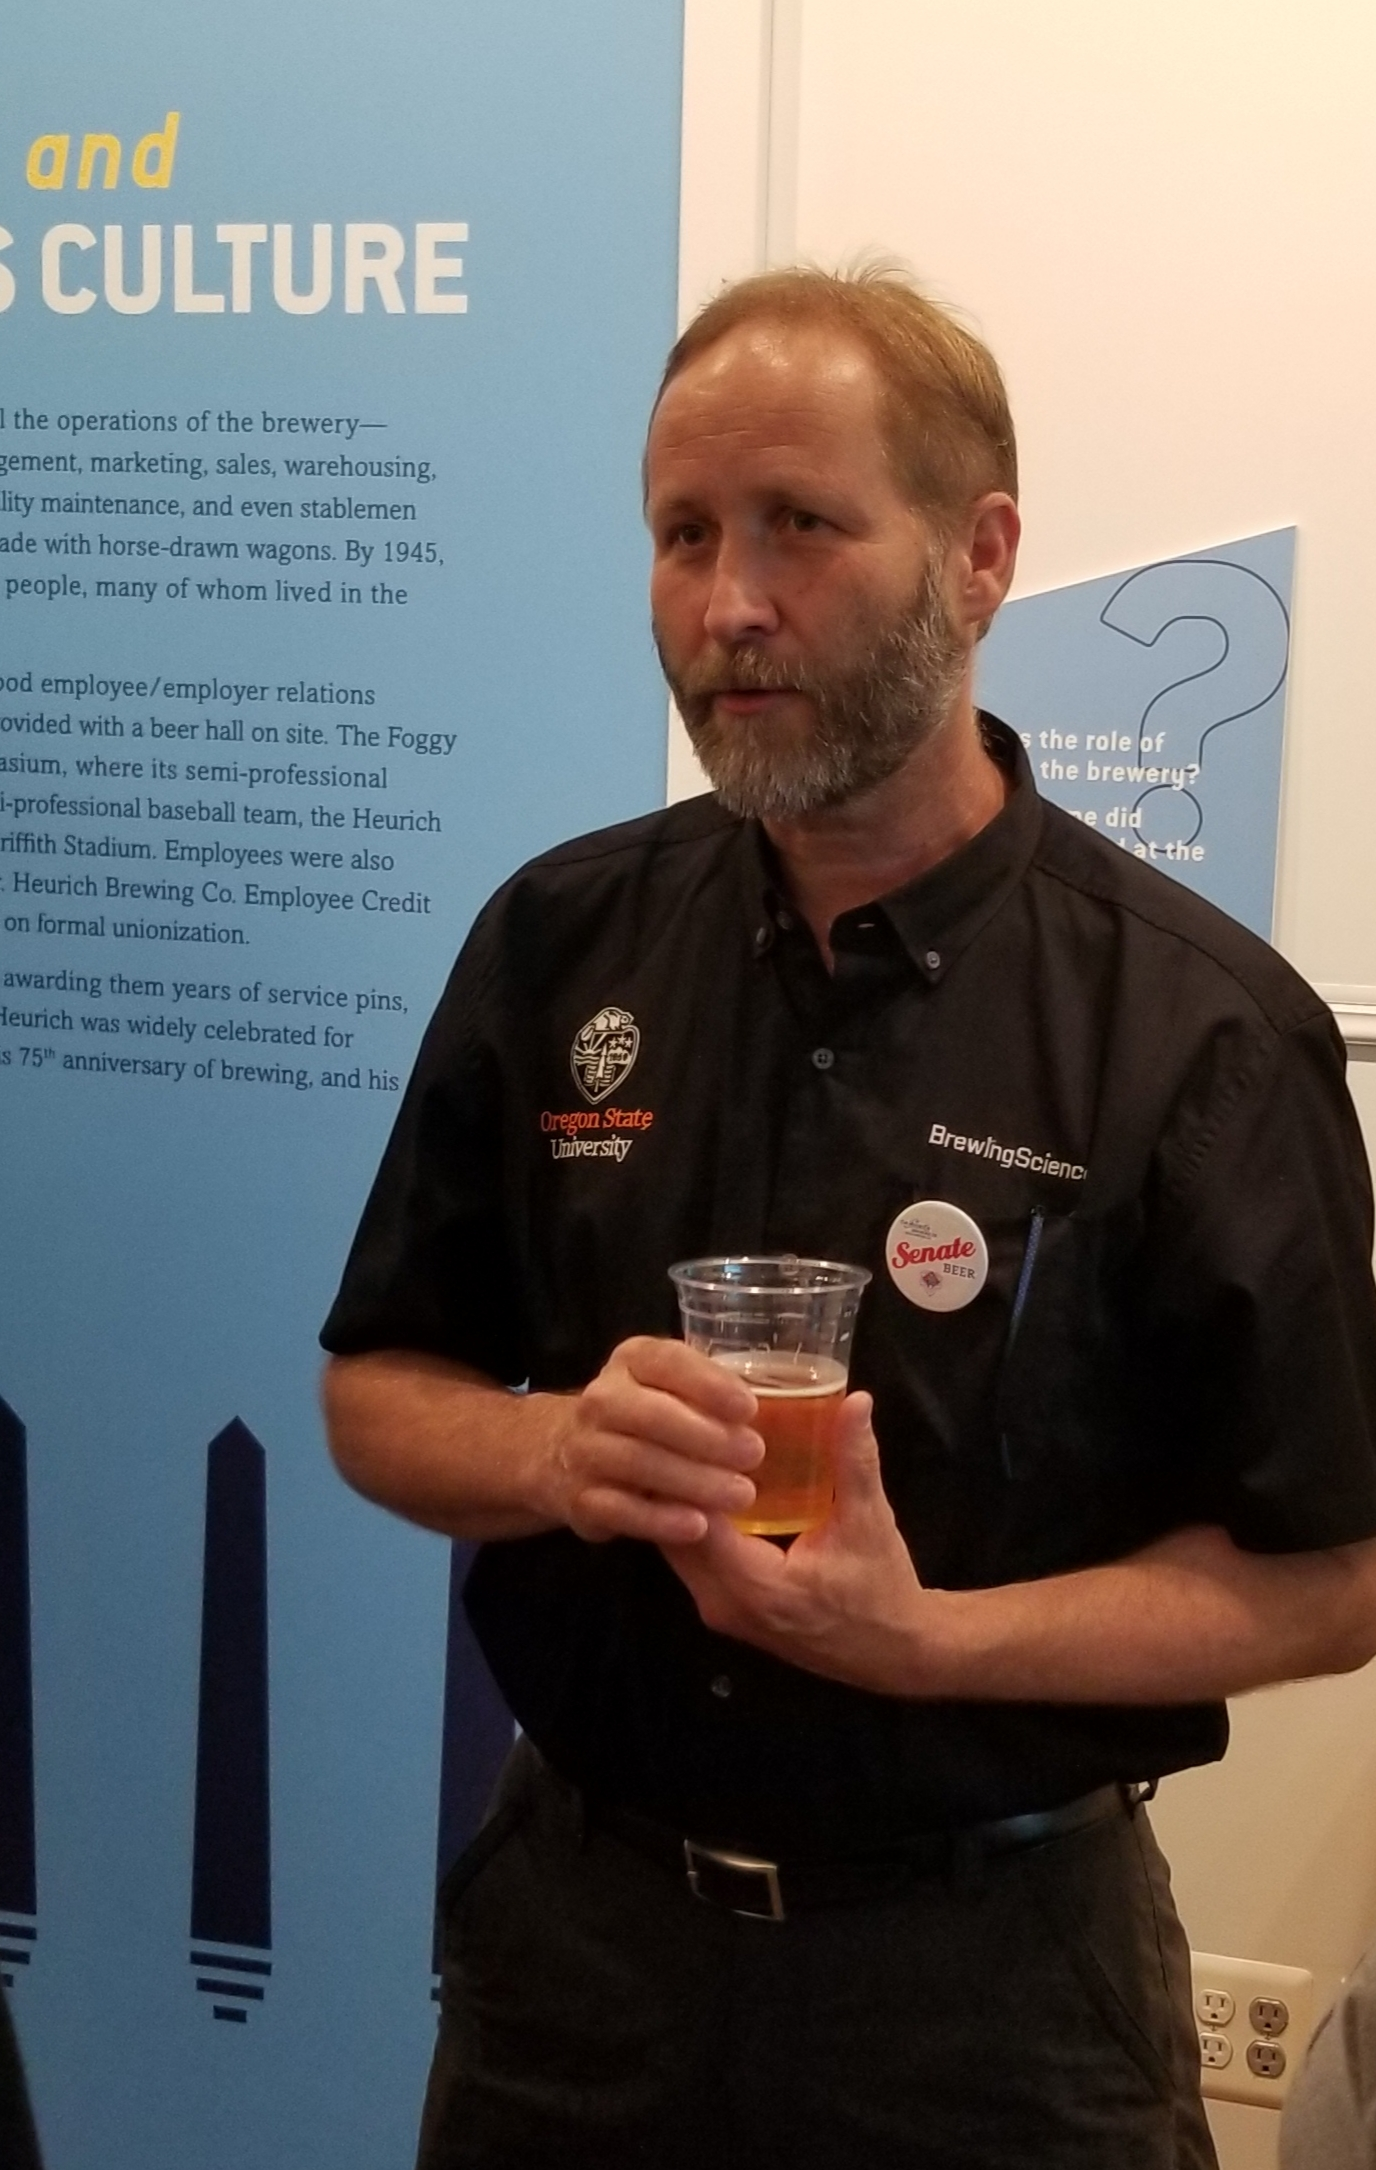 Jeff Clawson, pilot brewer at Oregon State, photo by Phil Galewitz